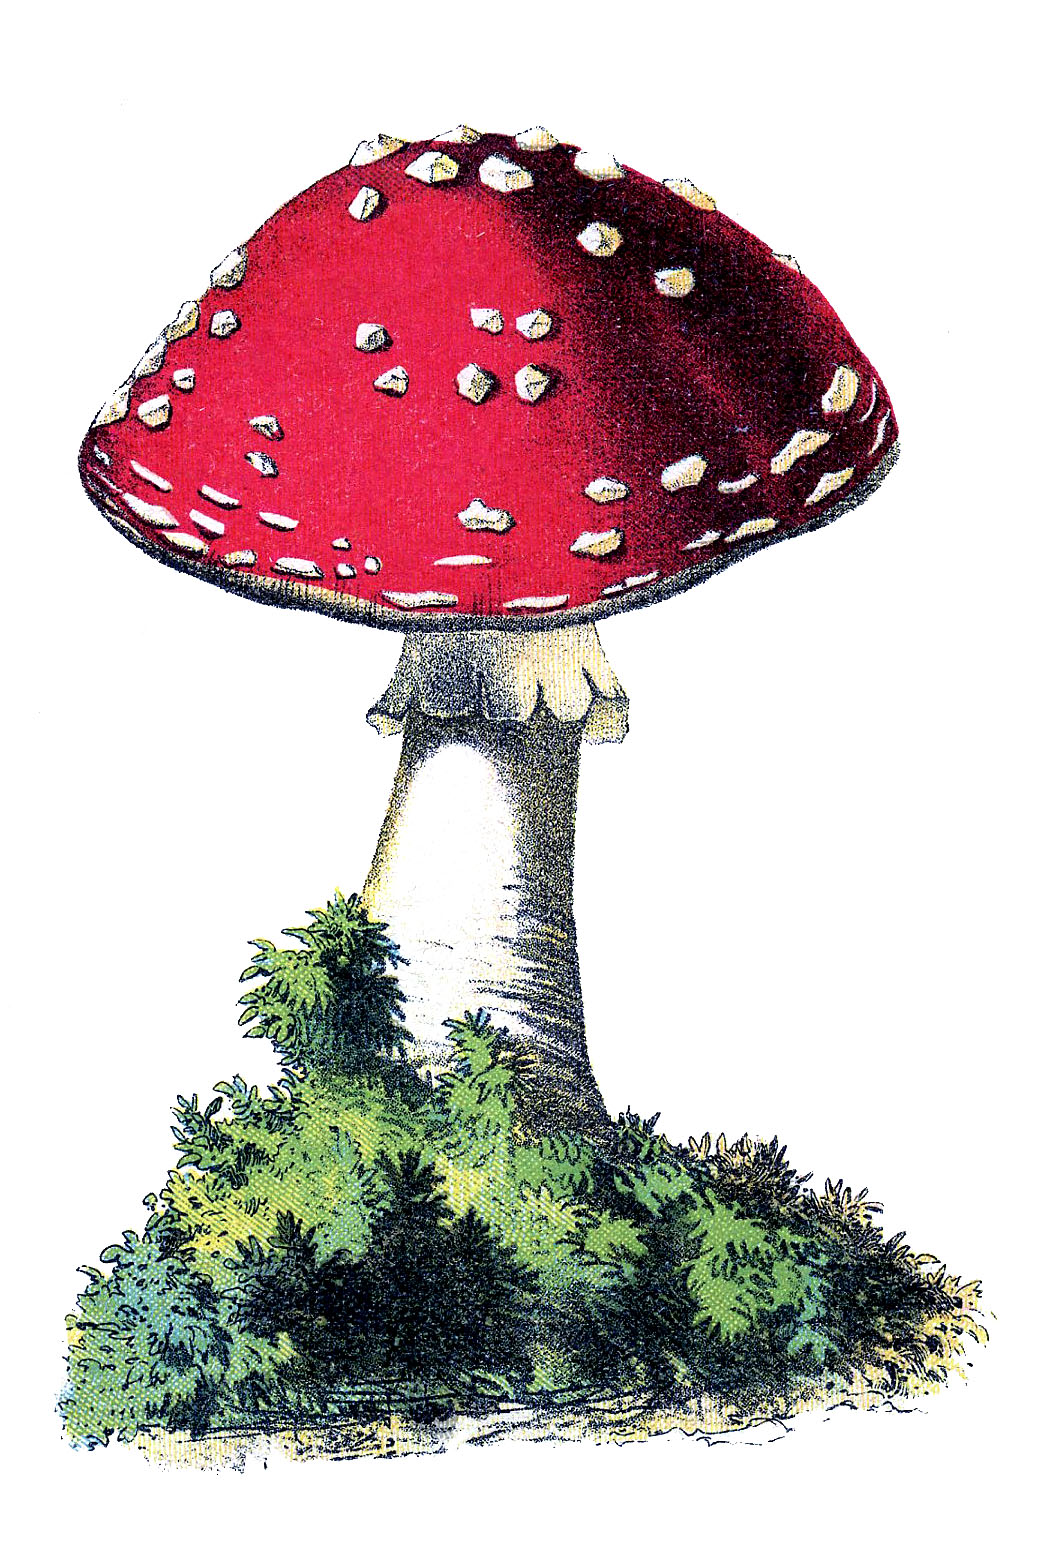 mushroom+red+vintage+image-graphicsfairy012